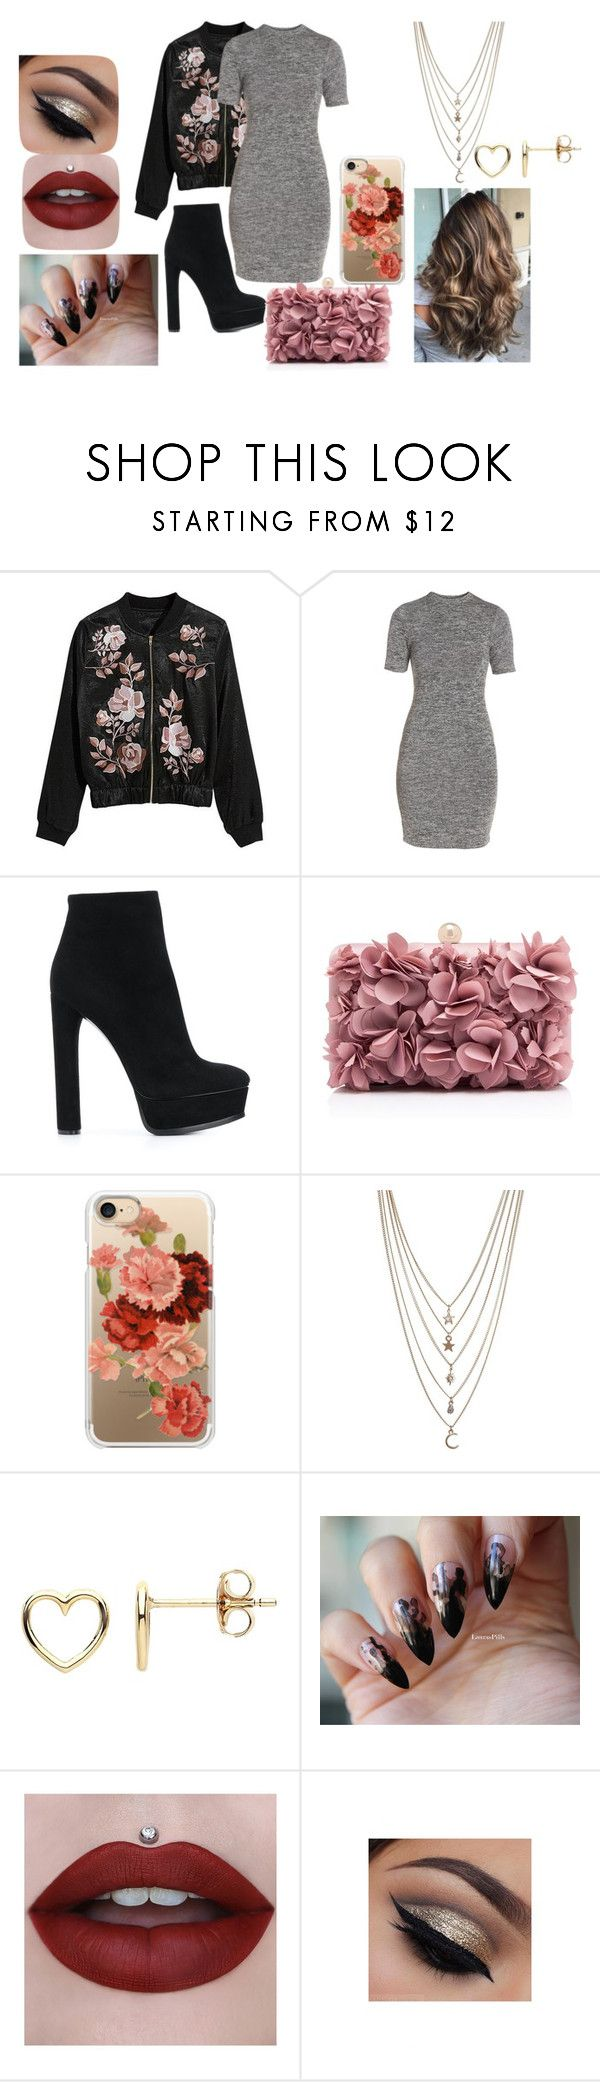 """""""Outfit#24"""" by harley-burns on Polyvore featuring French Connection, Casadei, Casetify, Ettika and Estella Bartlett"""